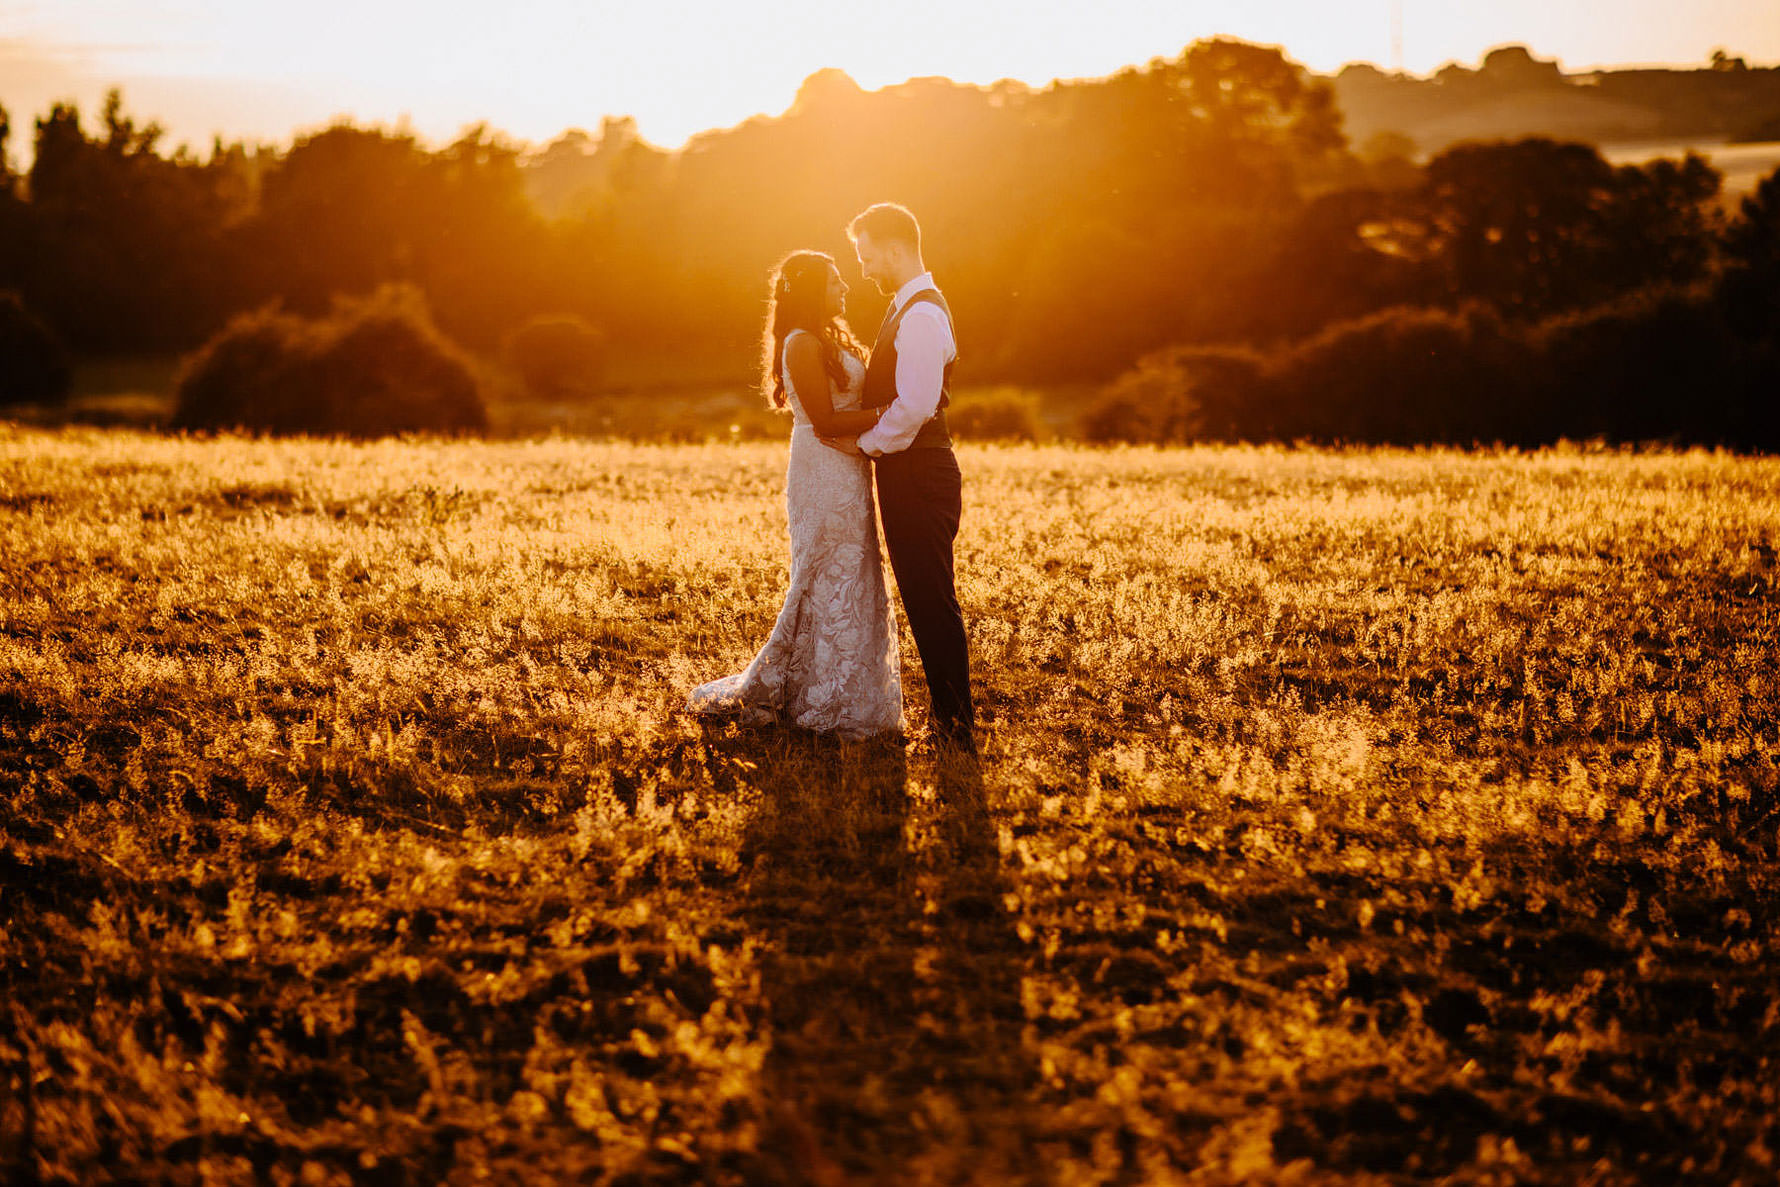 sunset photograph at Dodford Manor